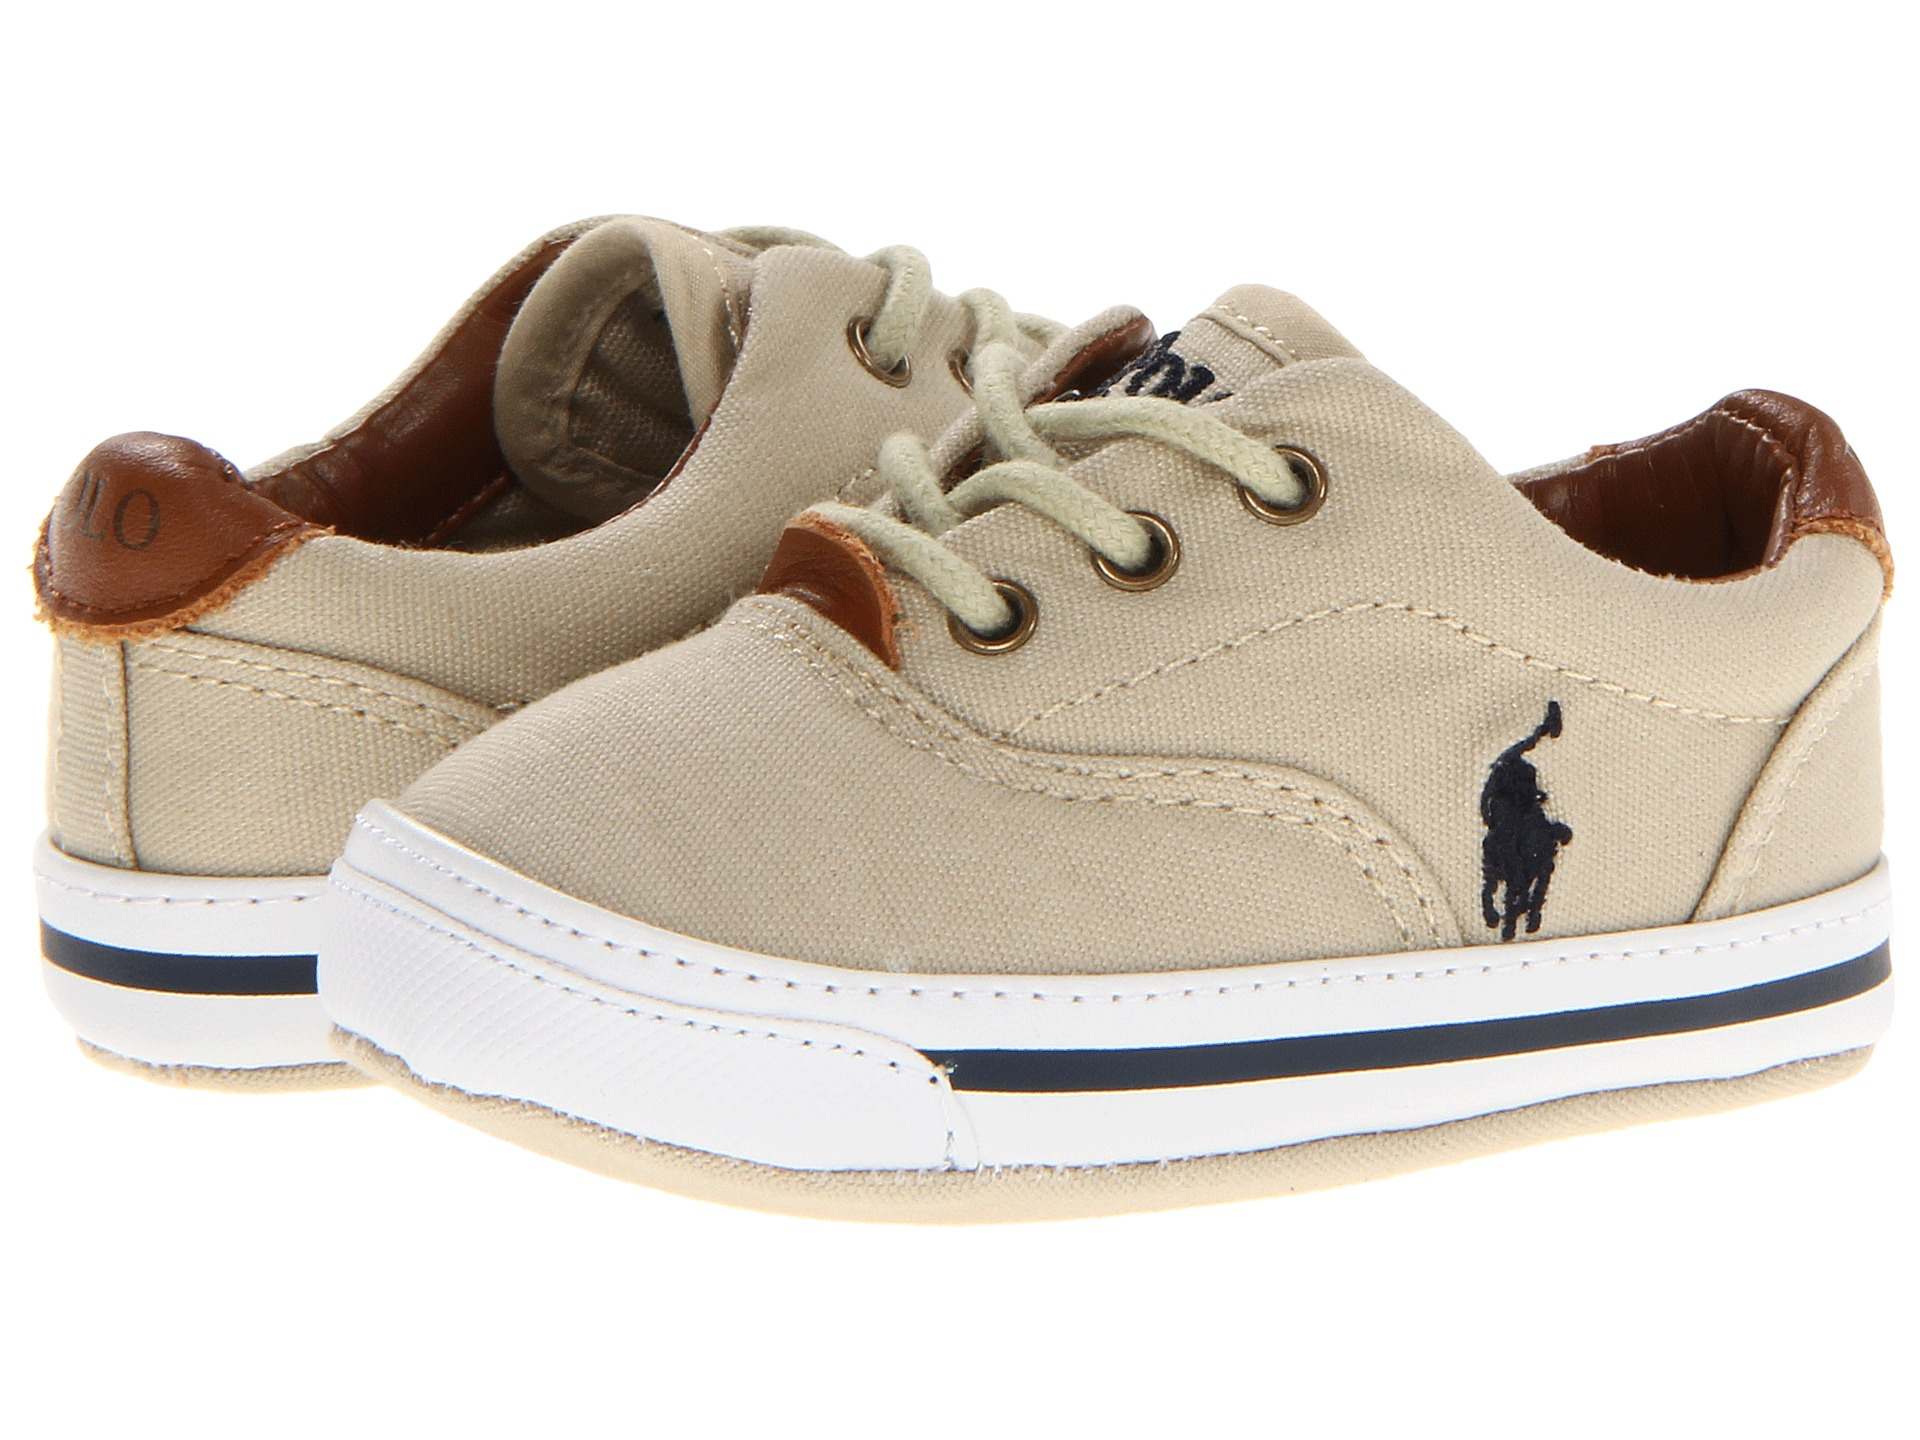 Find kids ralph lauren shoes from a vast selection of Boys' Shoes and Accessories. Get great deals on eBay!